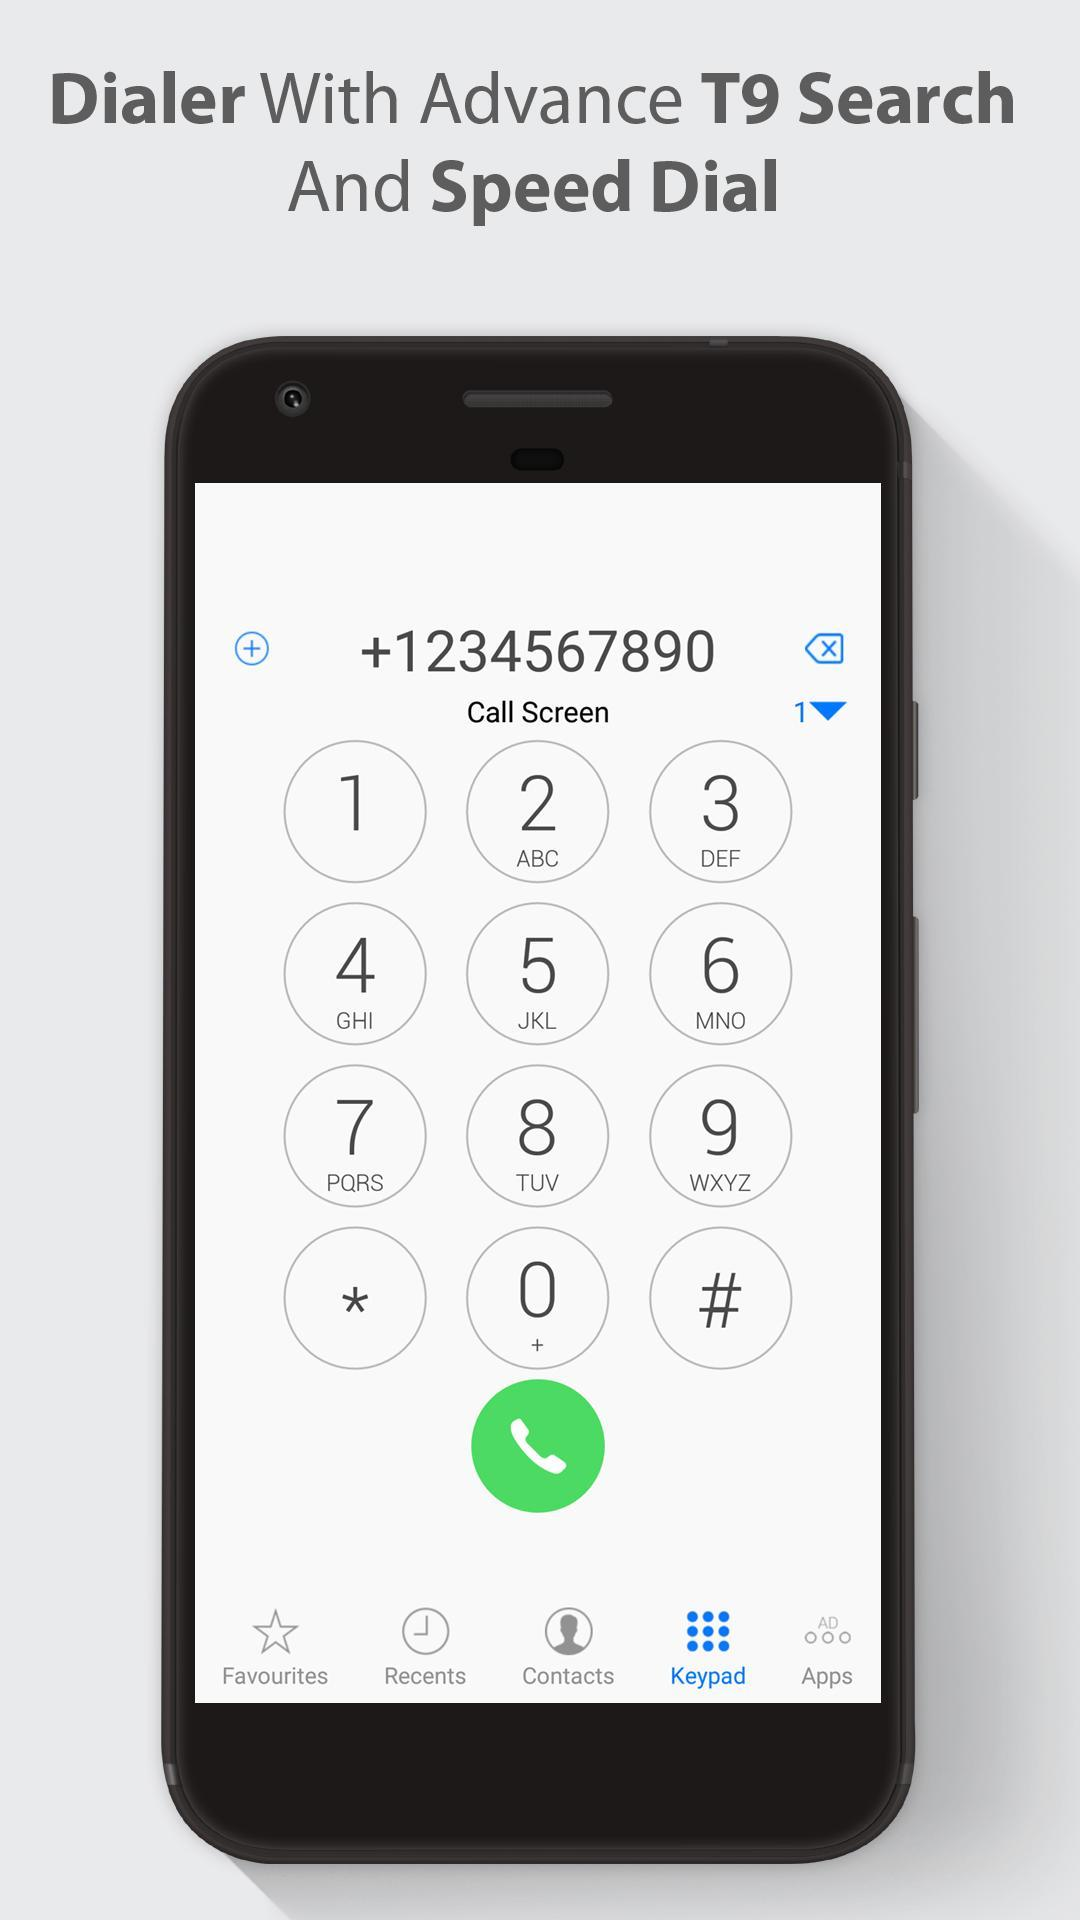 HD Phone 8 i Call Screen OS11 for Android - APK Download